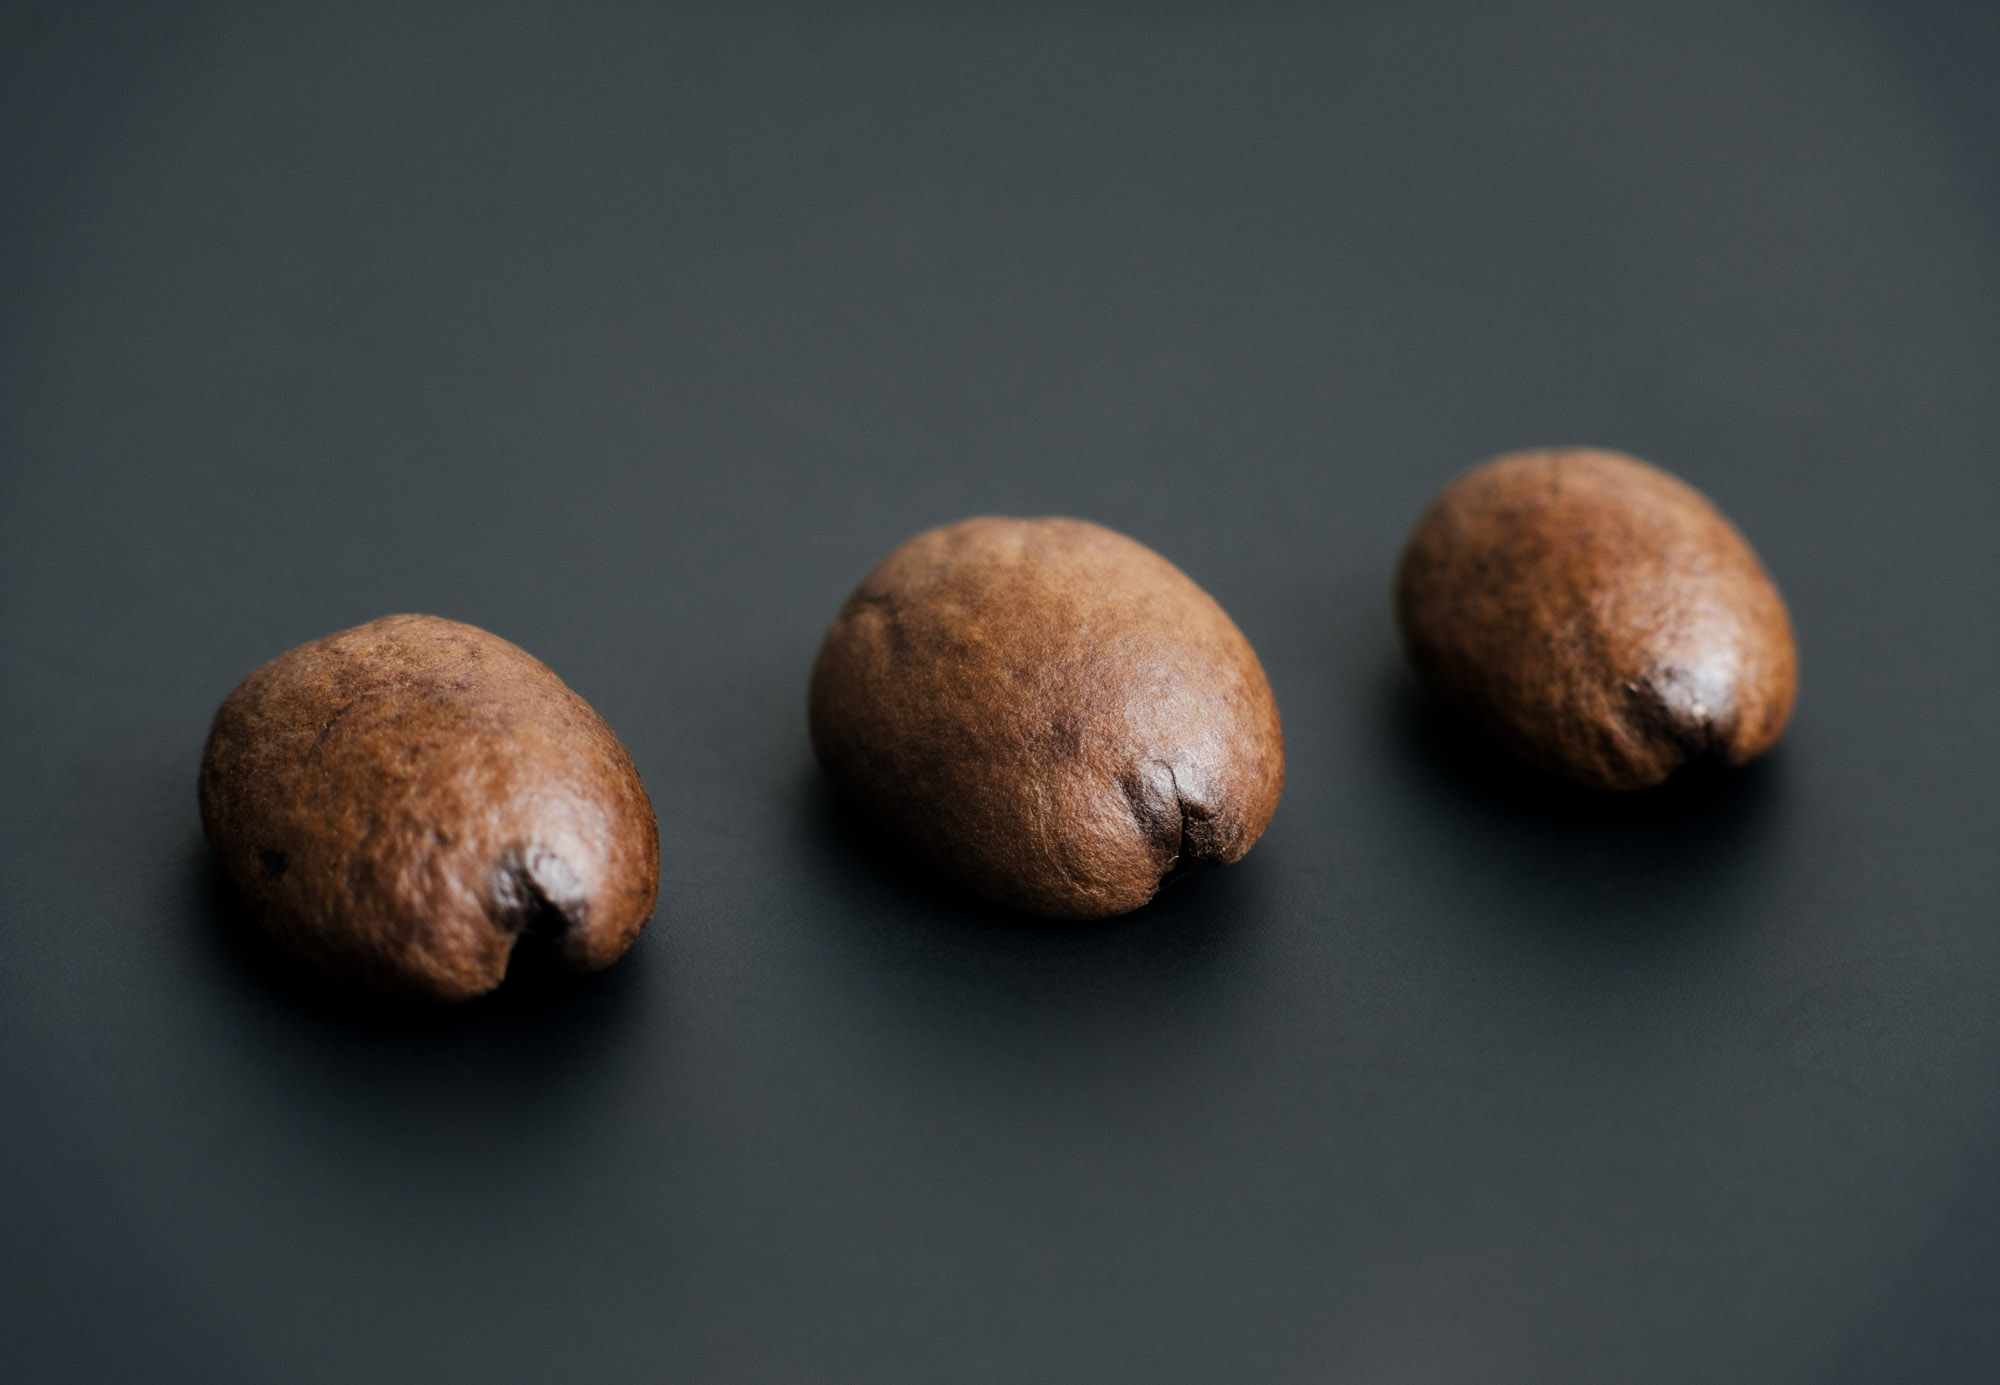 coffee beans with a dark spot on their tips